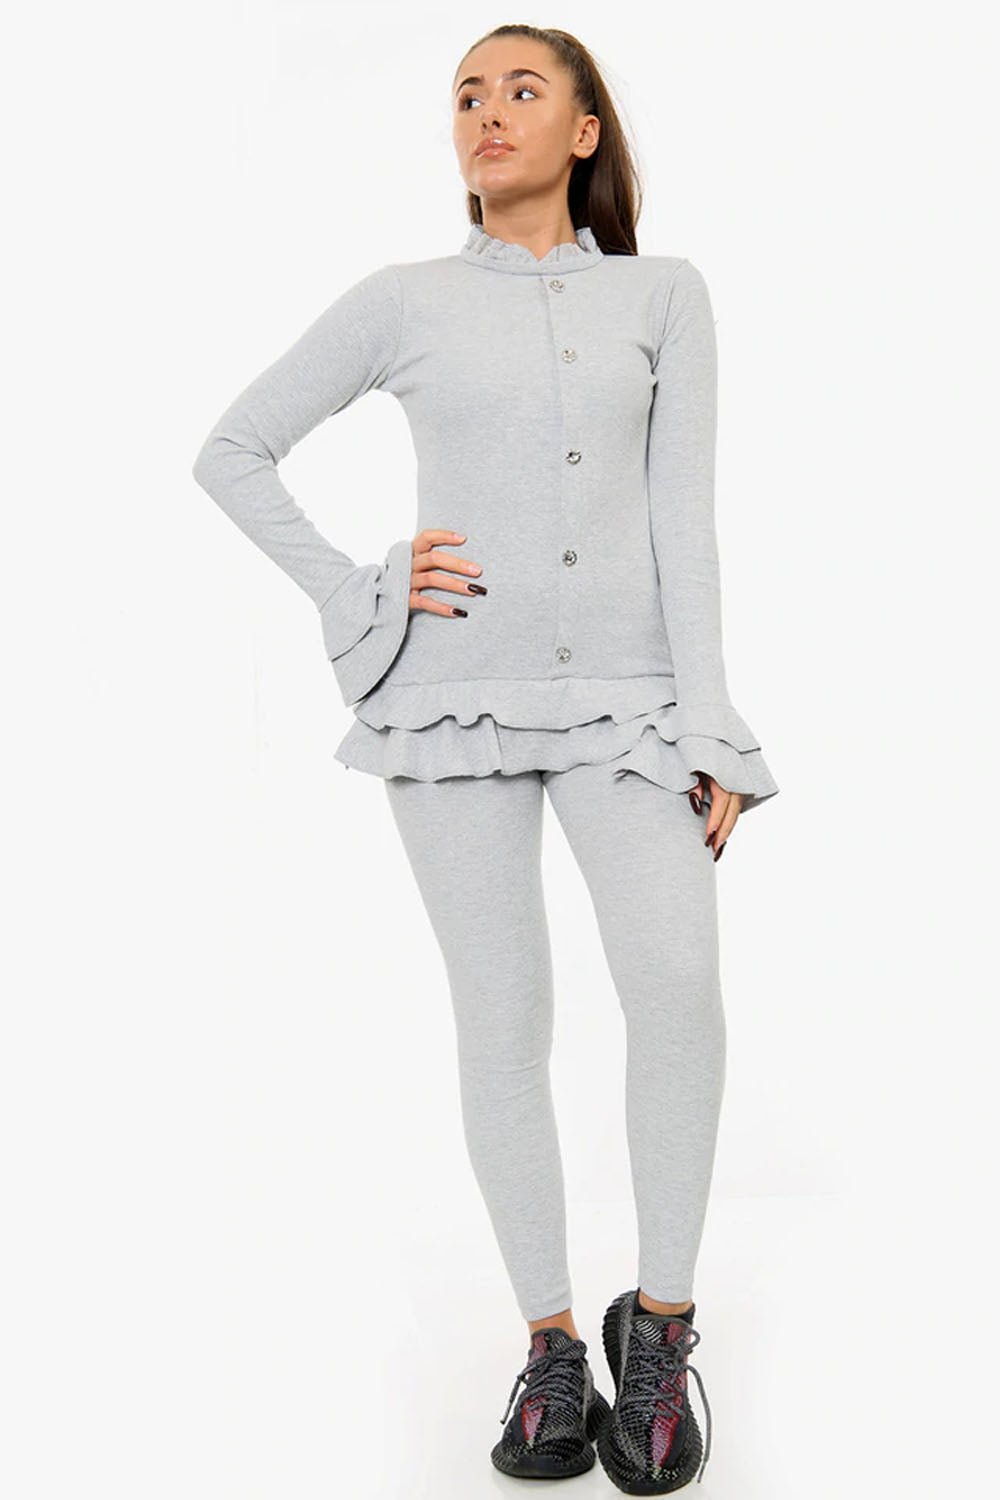 GREY FRILL HEM RIBBED LOUNGE WEAR SET - Jessie